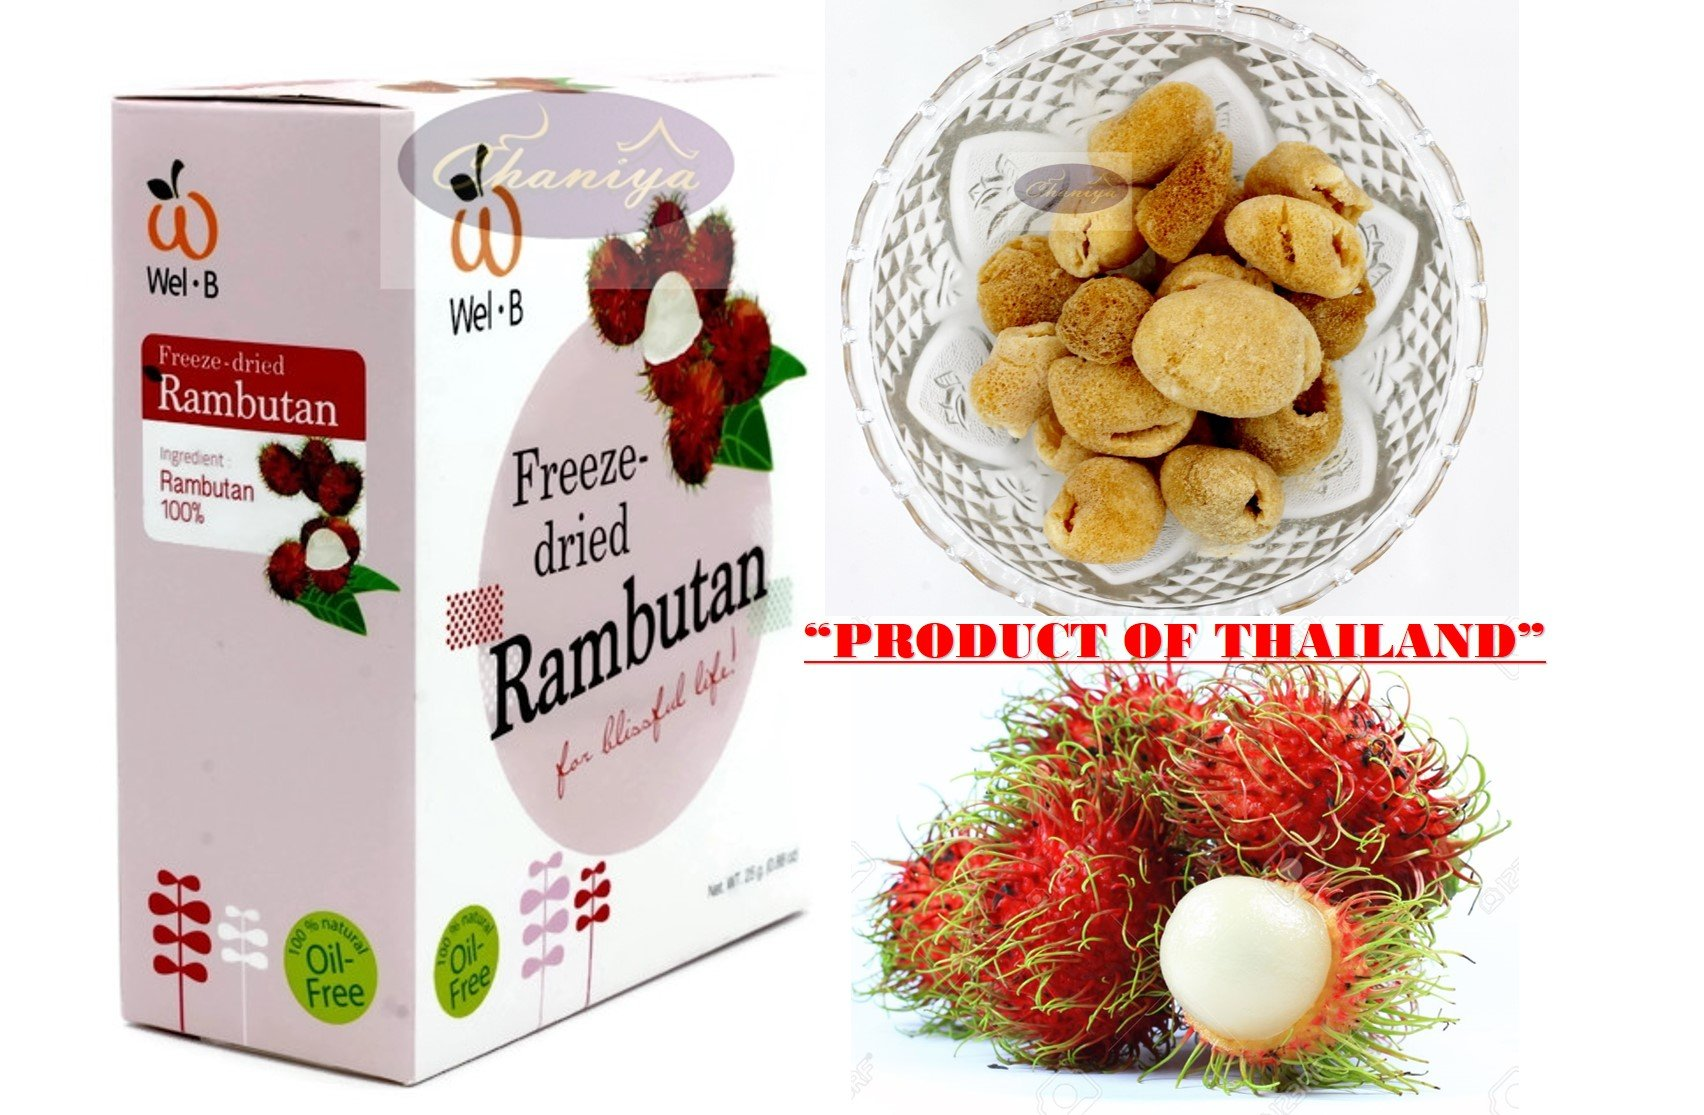 Crispy Freeze dried Fruit Rambutan Sweet And Sour Healthy Snack 100% all Natural Oil-Free 25 g. (0.88 Oz)